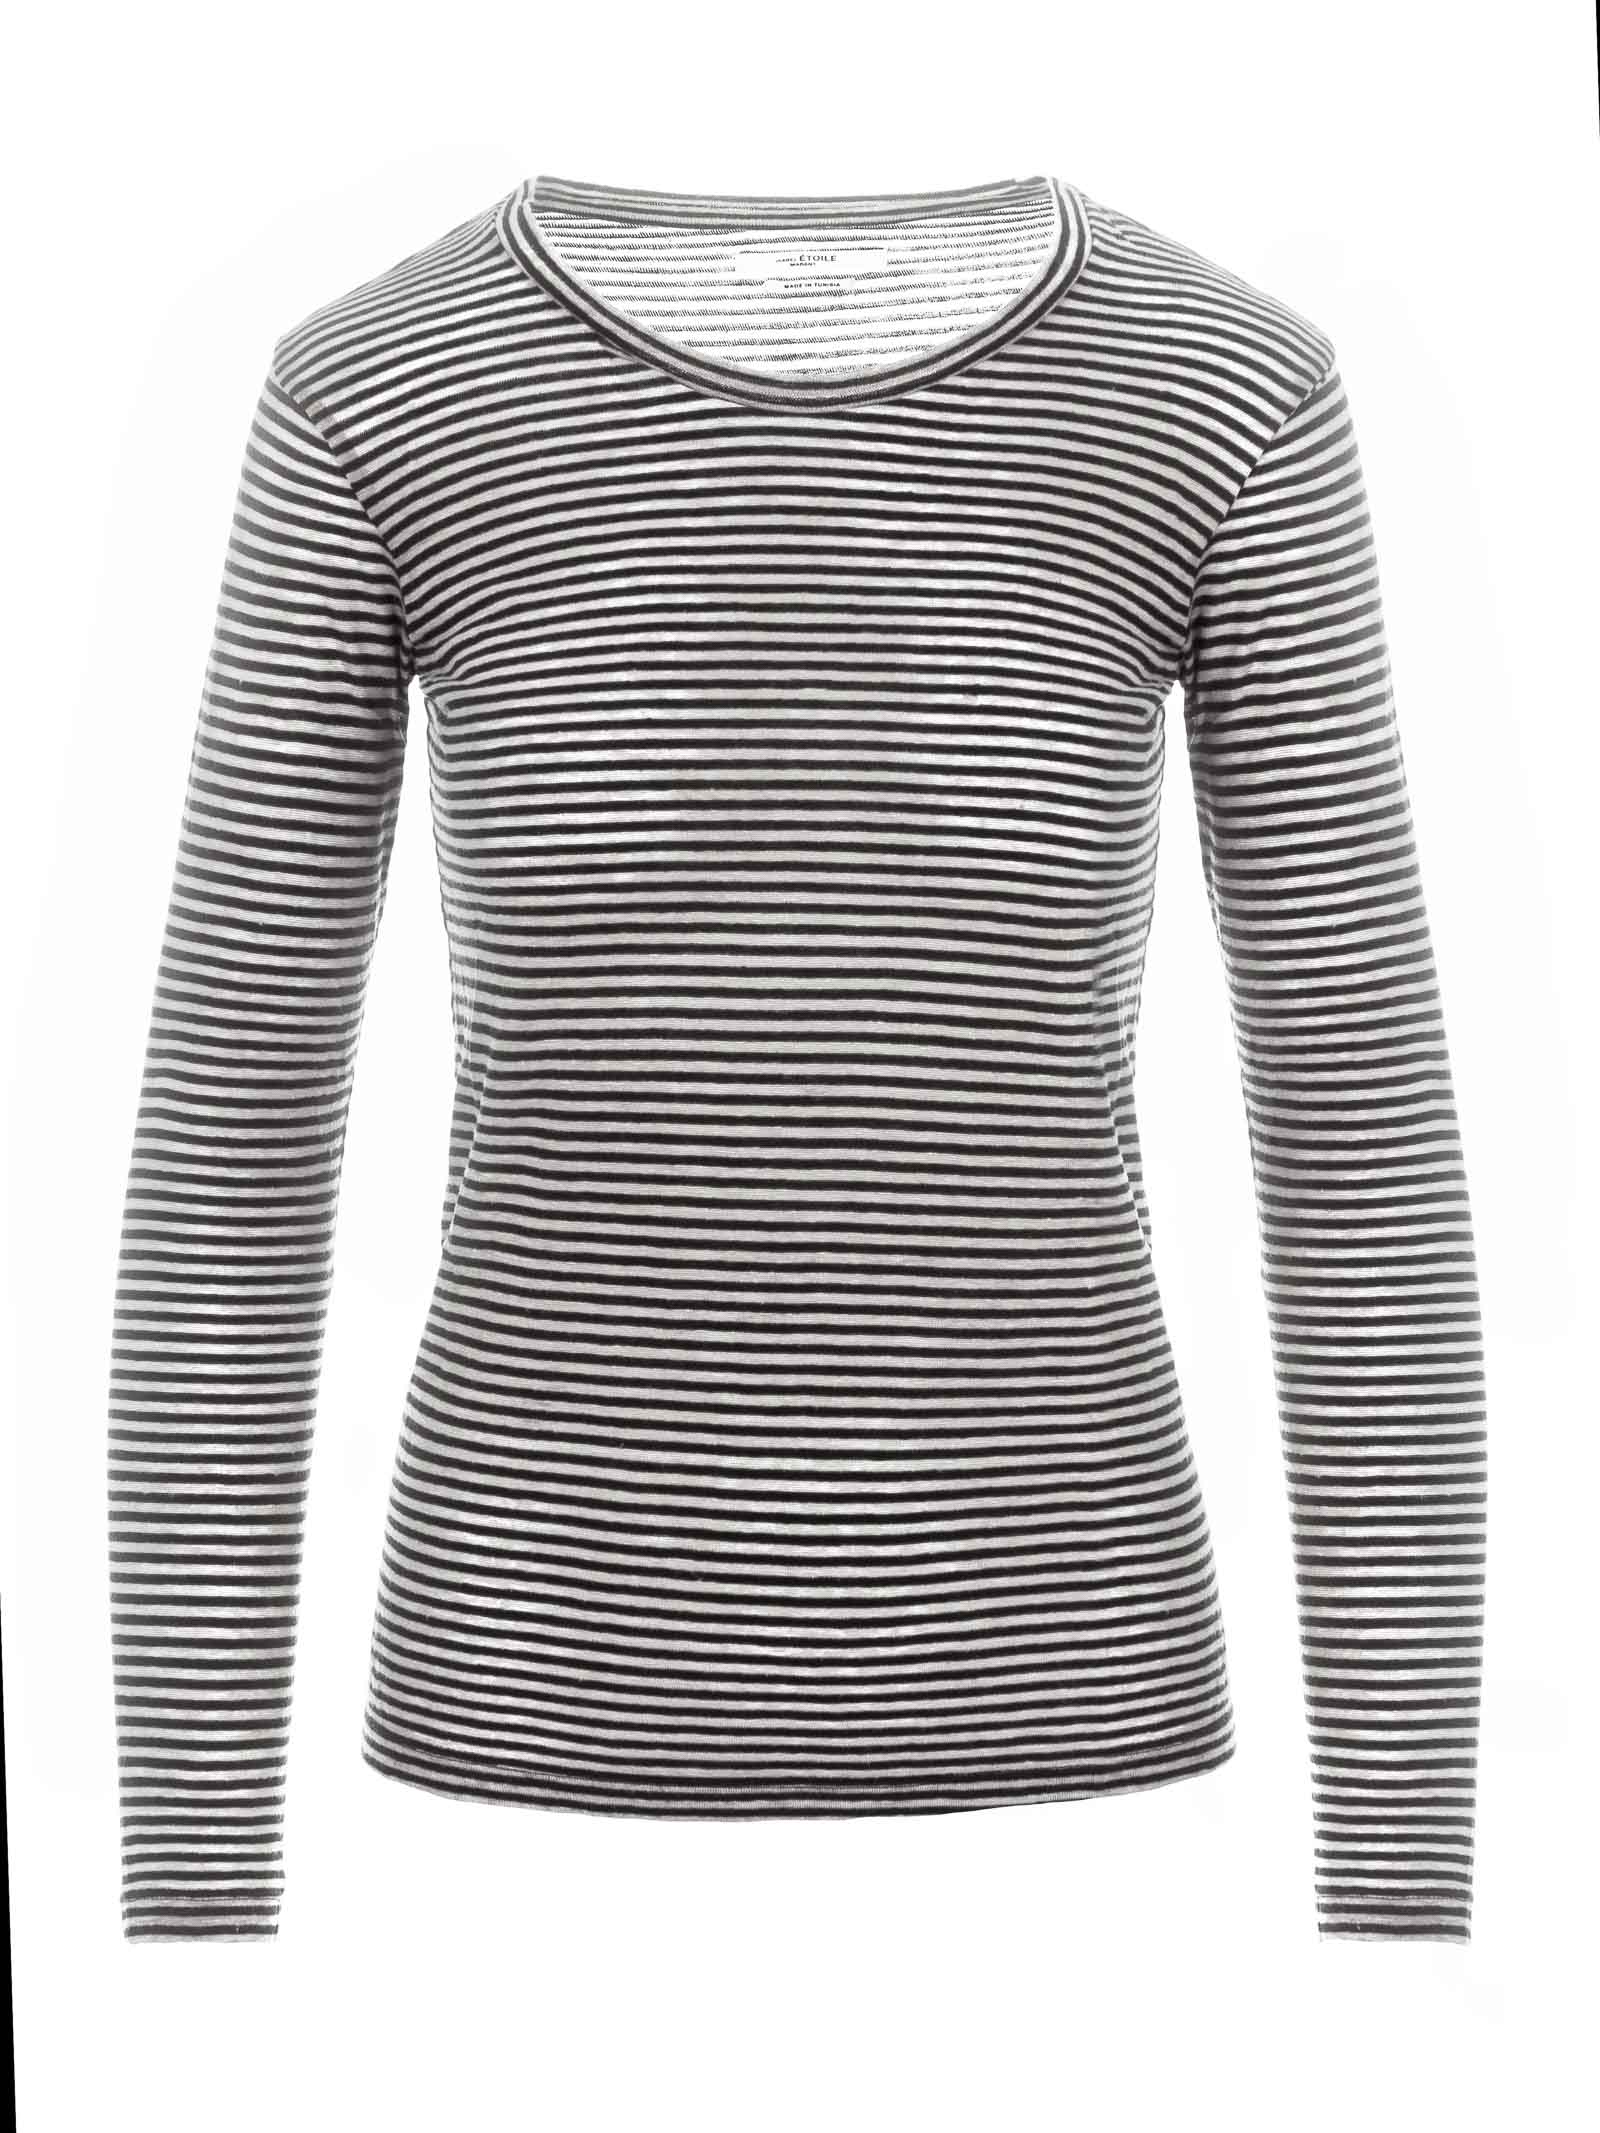 Details about Isabel Marant Women's Clothing T Shirts & Tops TS040400M006E | White Black